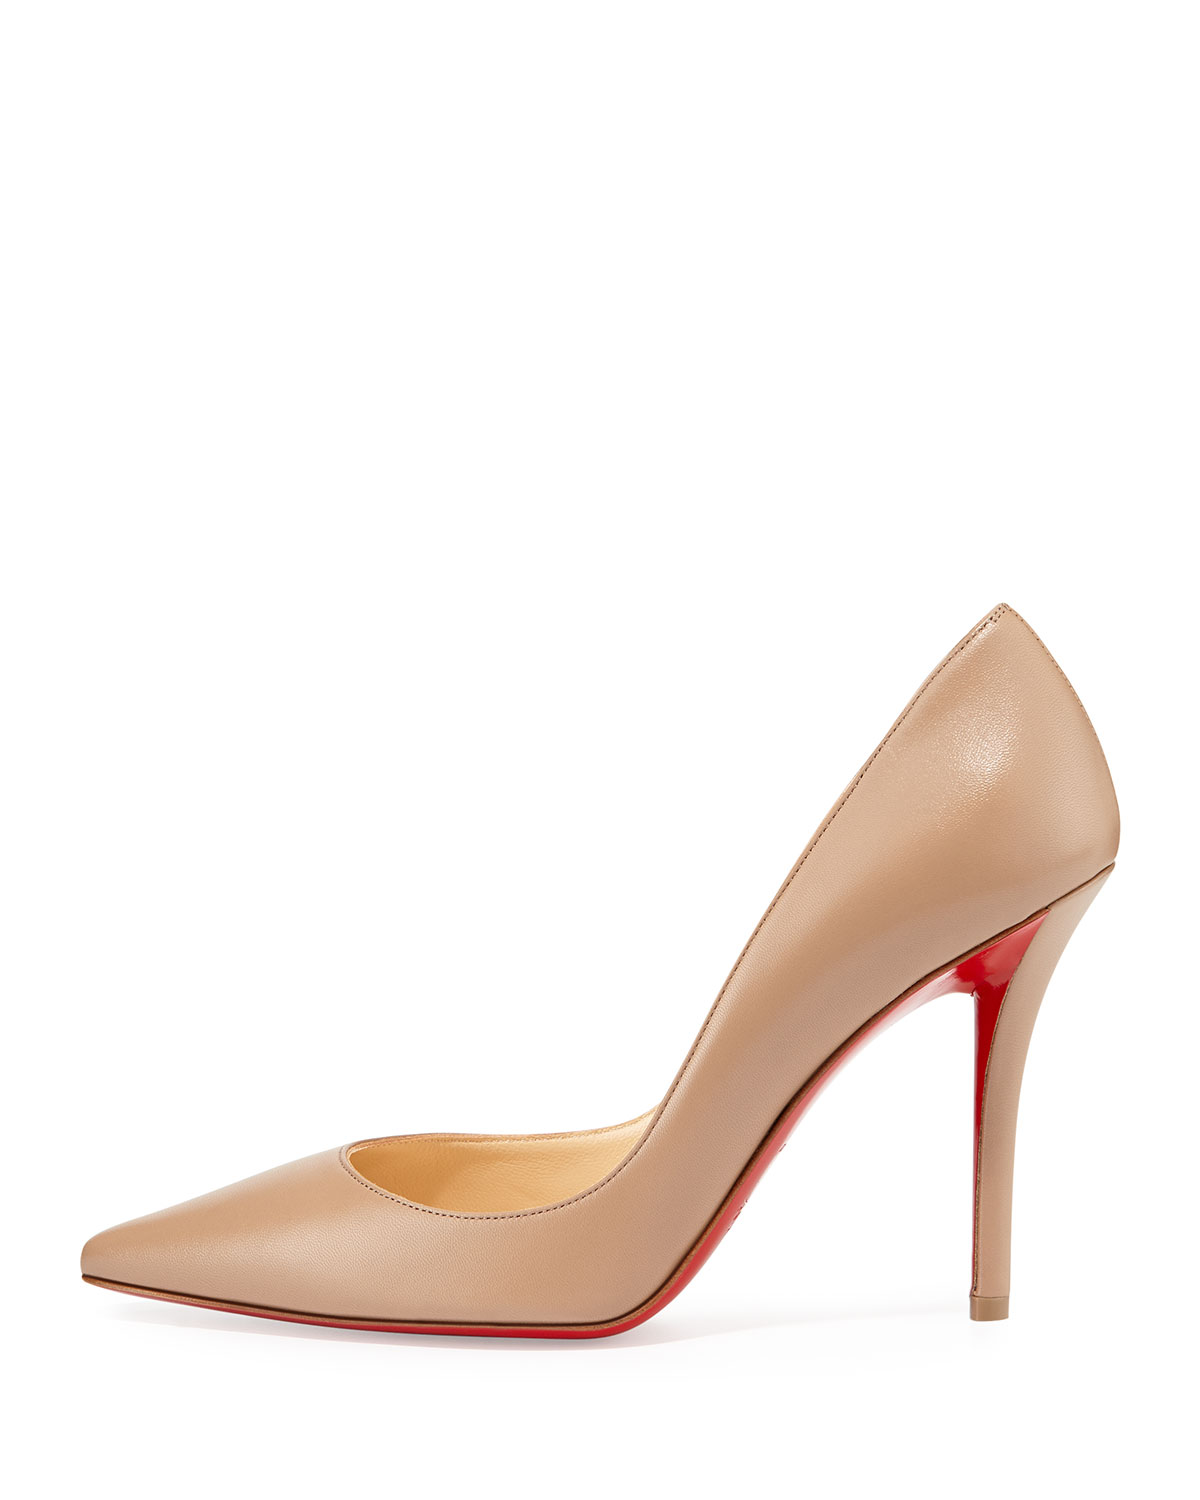 Christian Louboutin Apostrophy Pointed Red-Sole Pump, Neptune